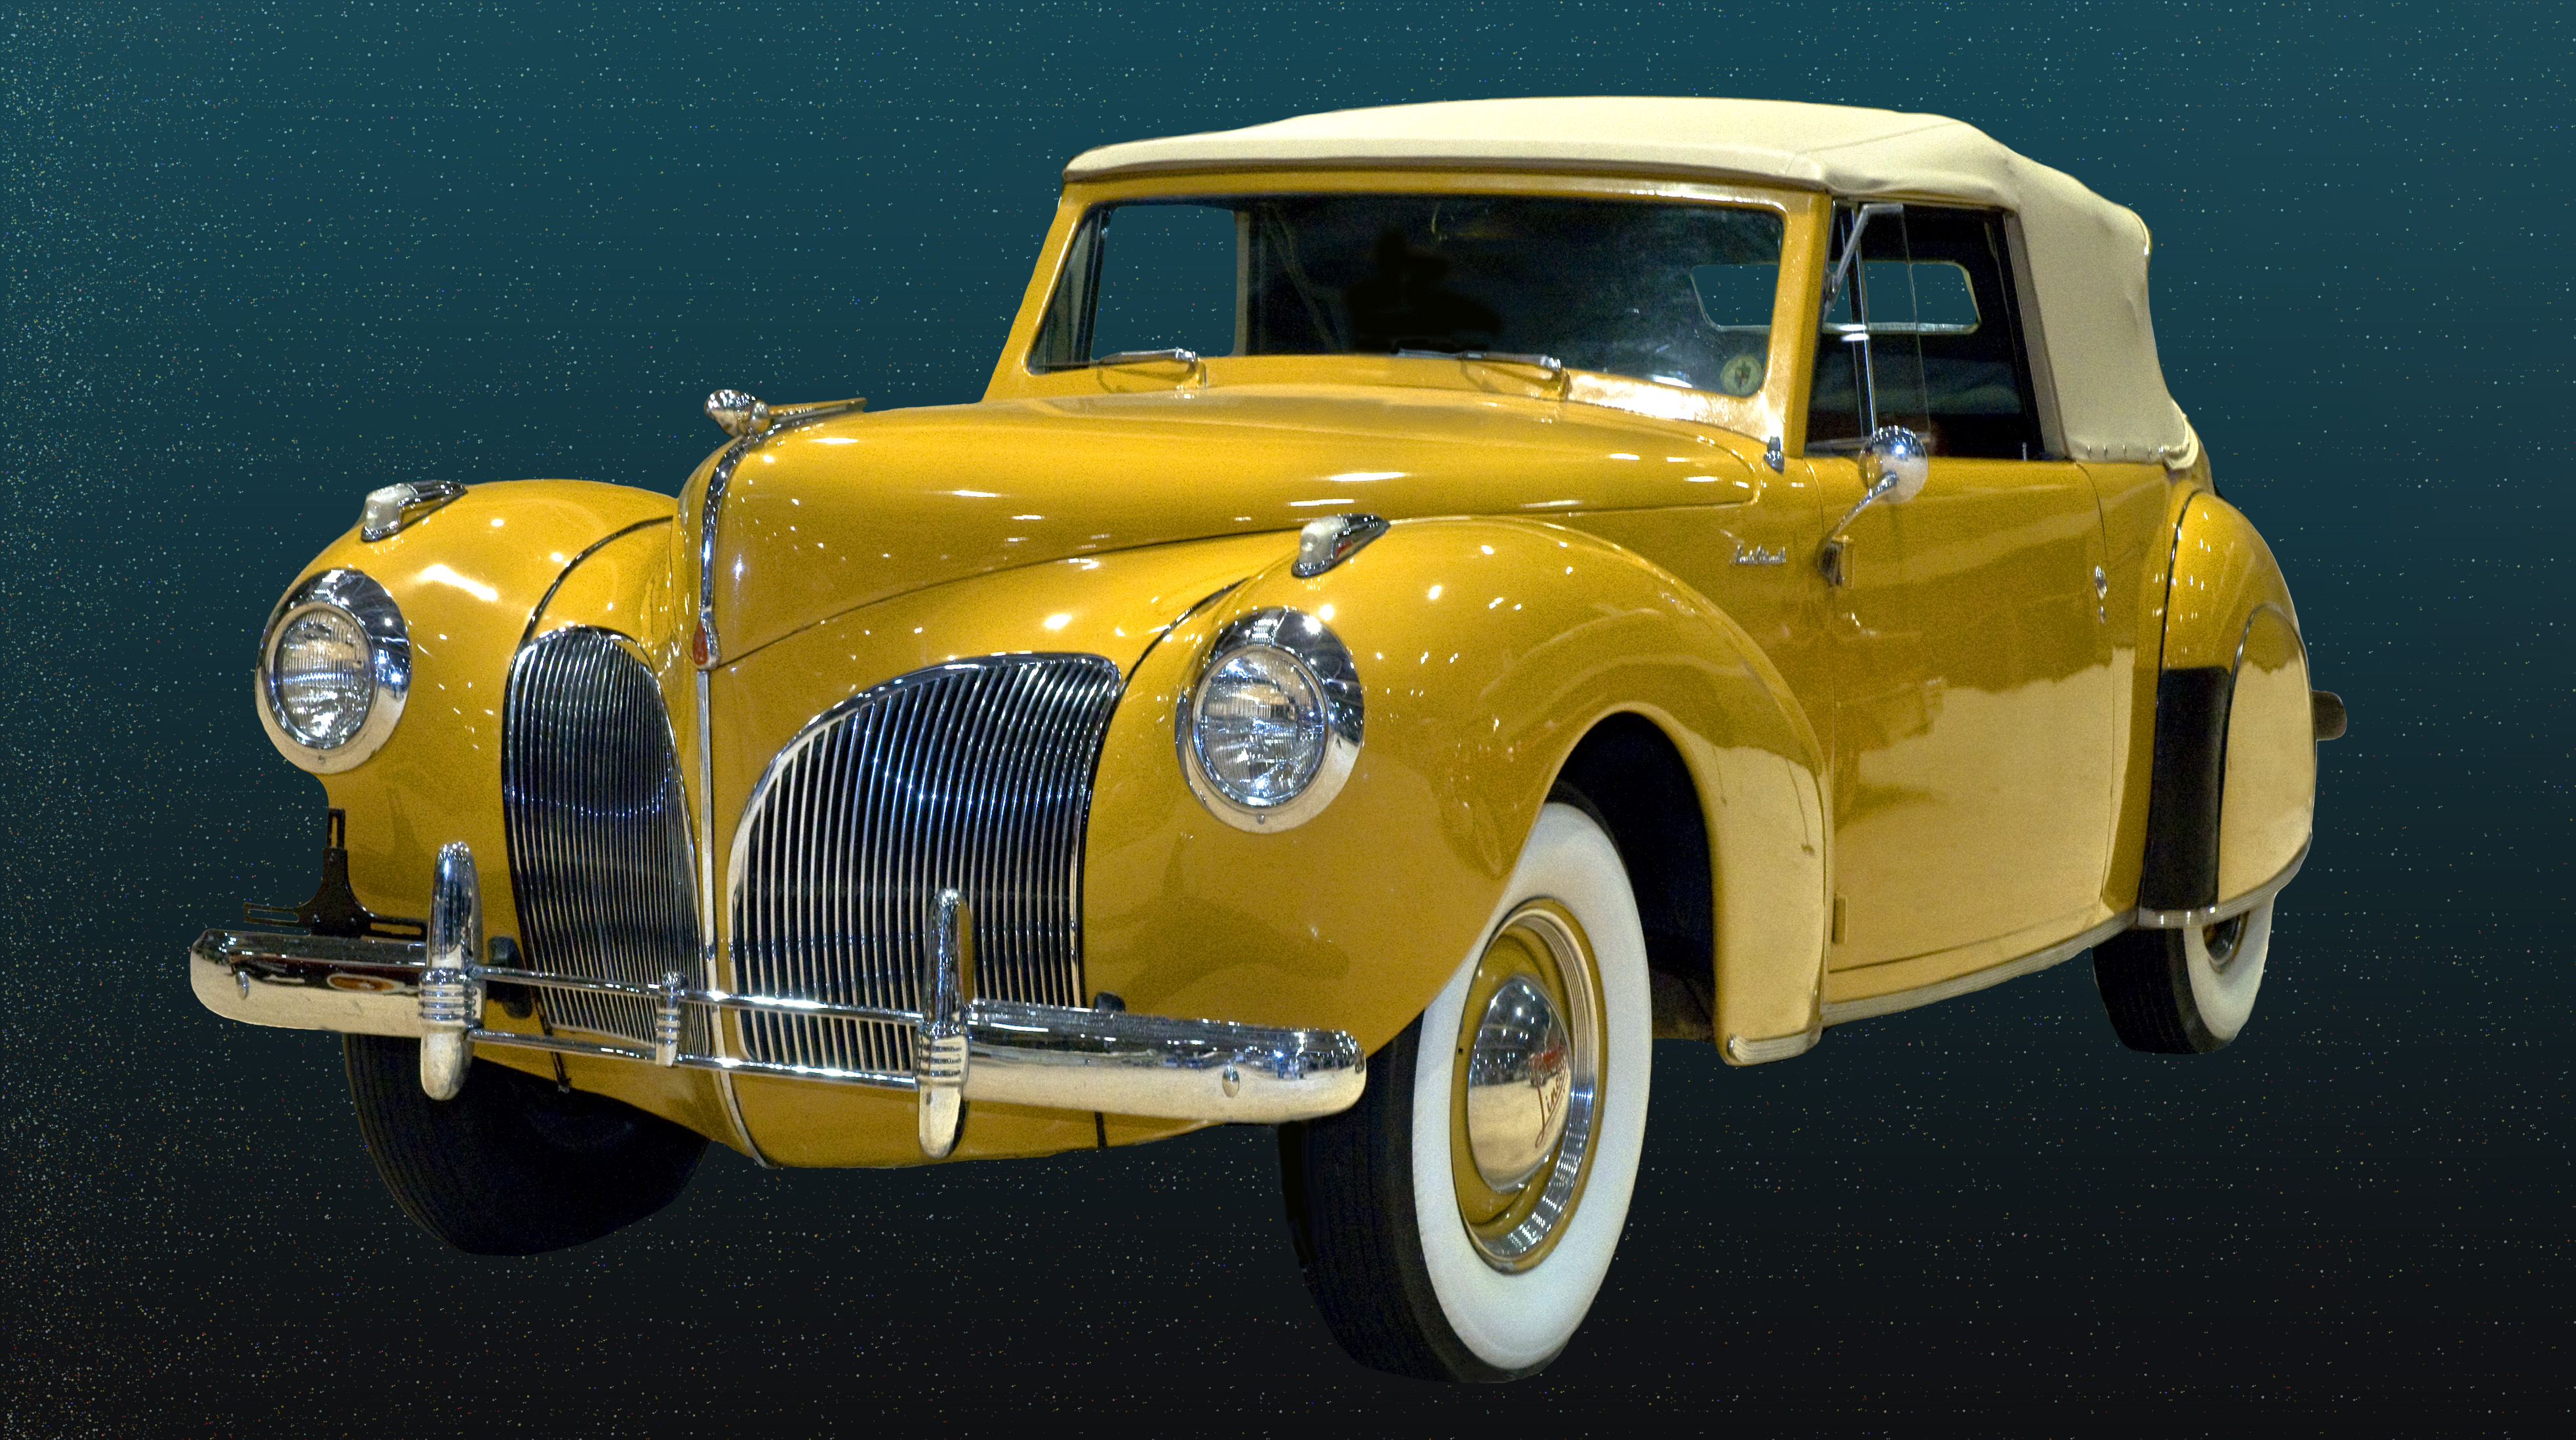 File:1941 Lincoln Continental Convertible.jpg - Wikimedia Commons